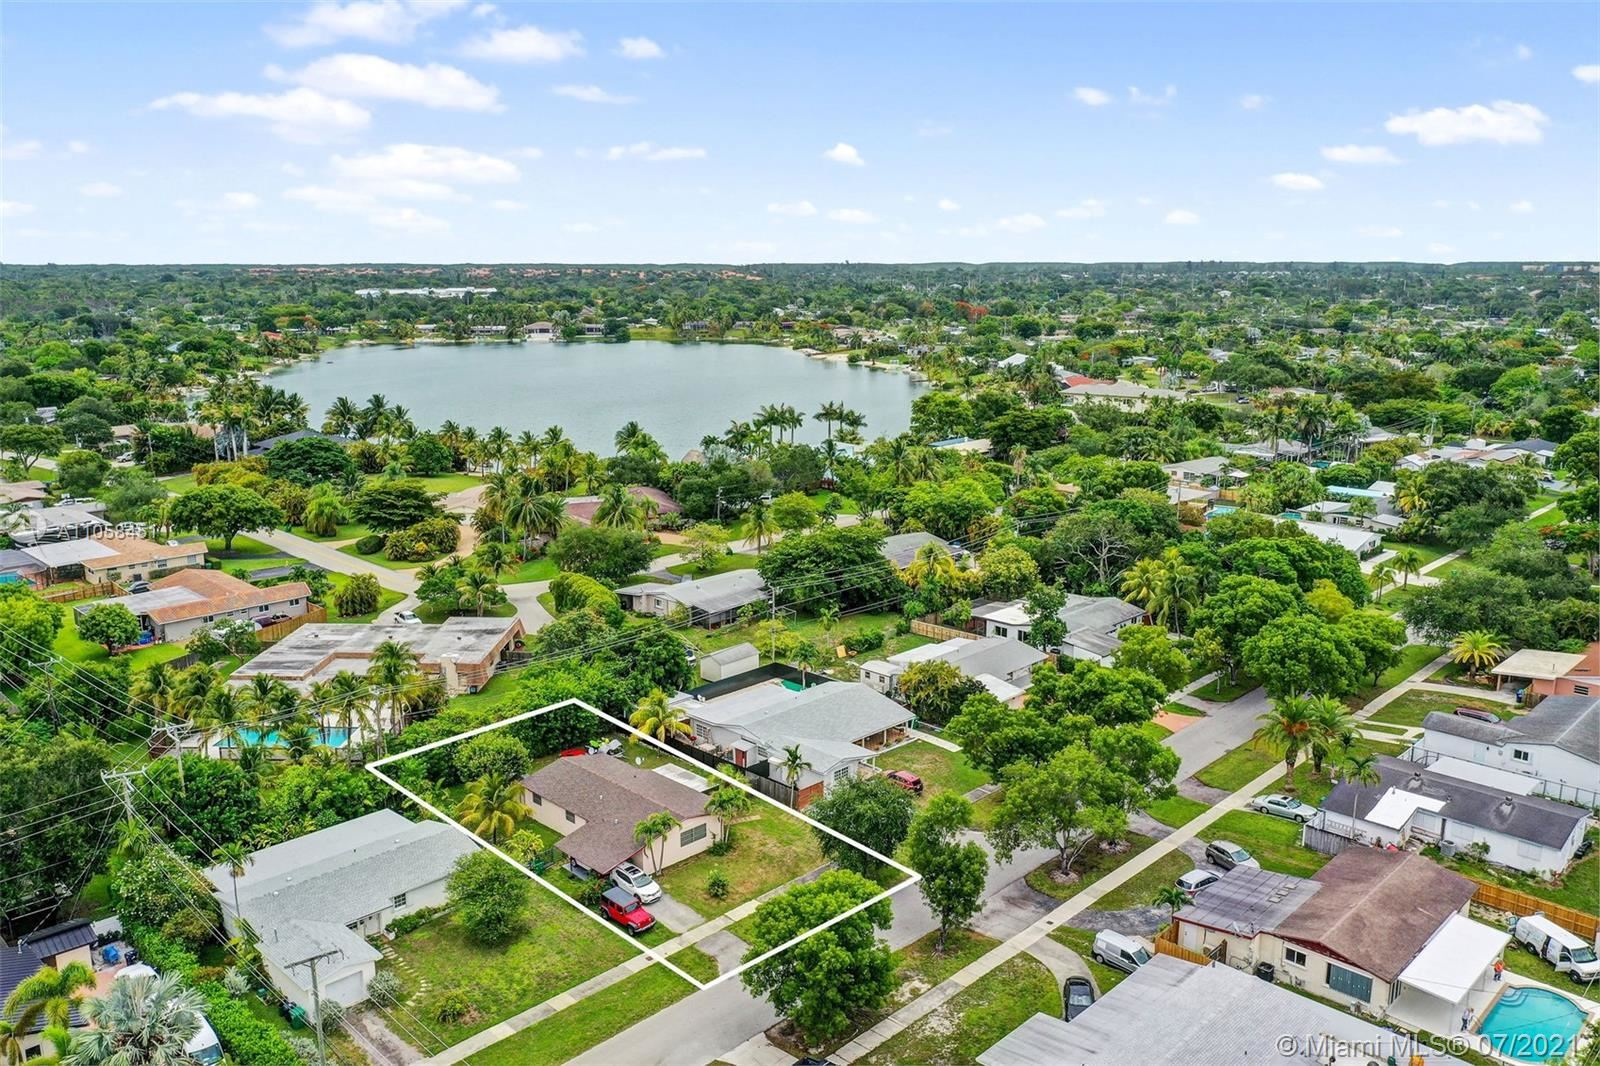 19441 SW Whispering Pines Rd, Cutler Bay, FL 33157 - #: A11058451